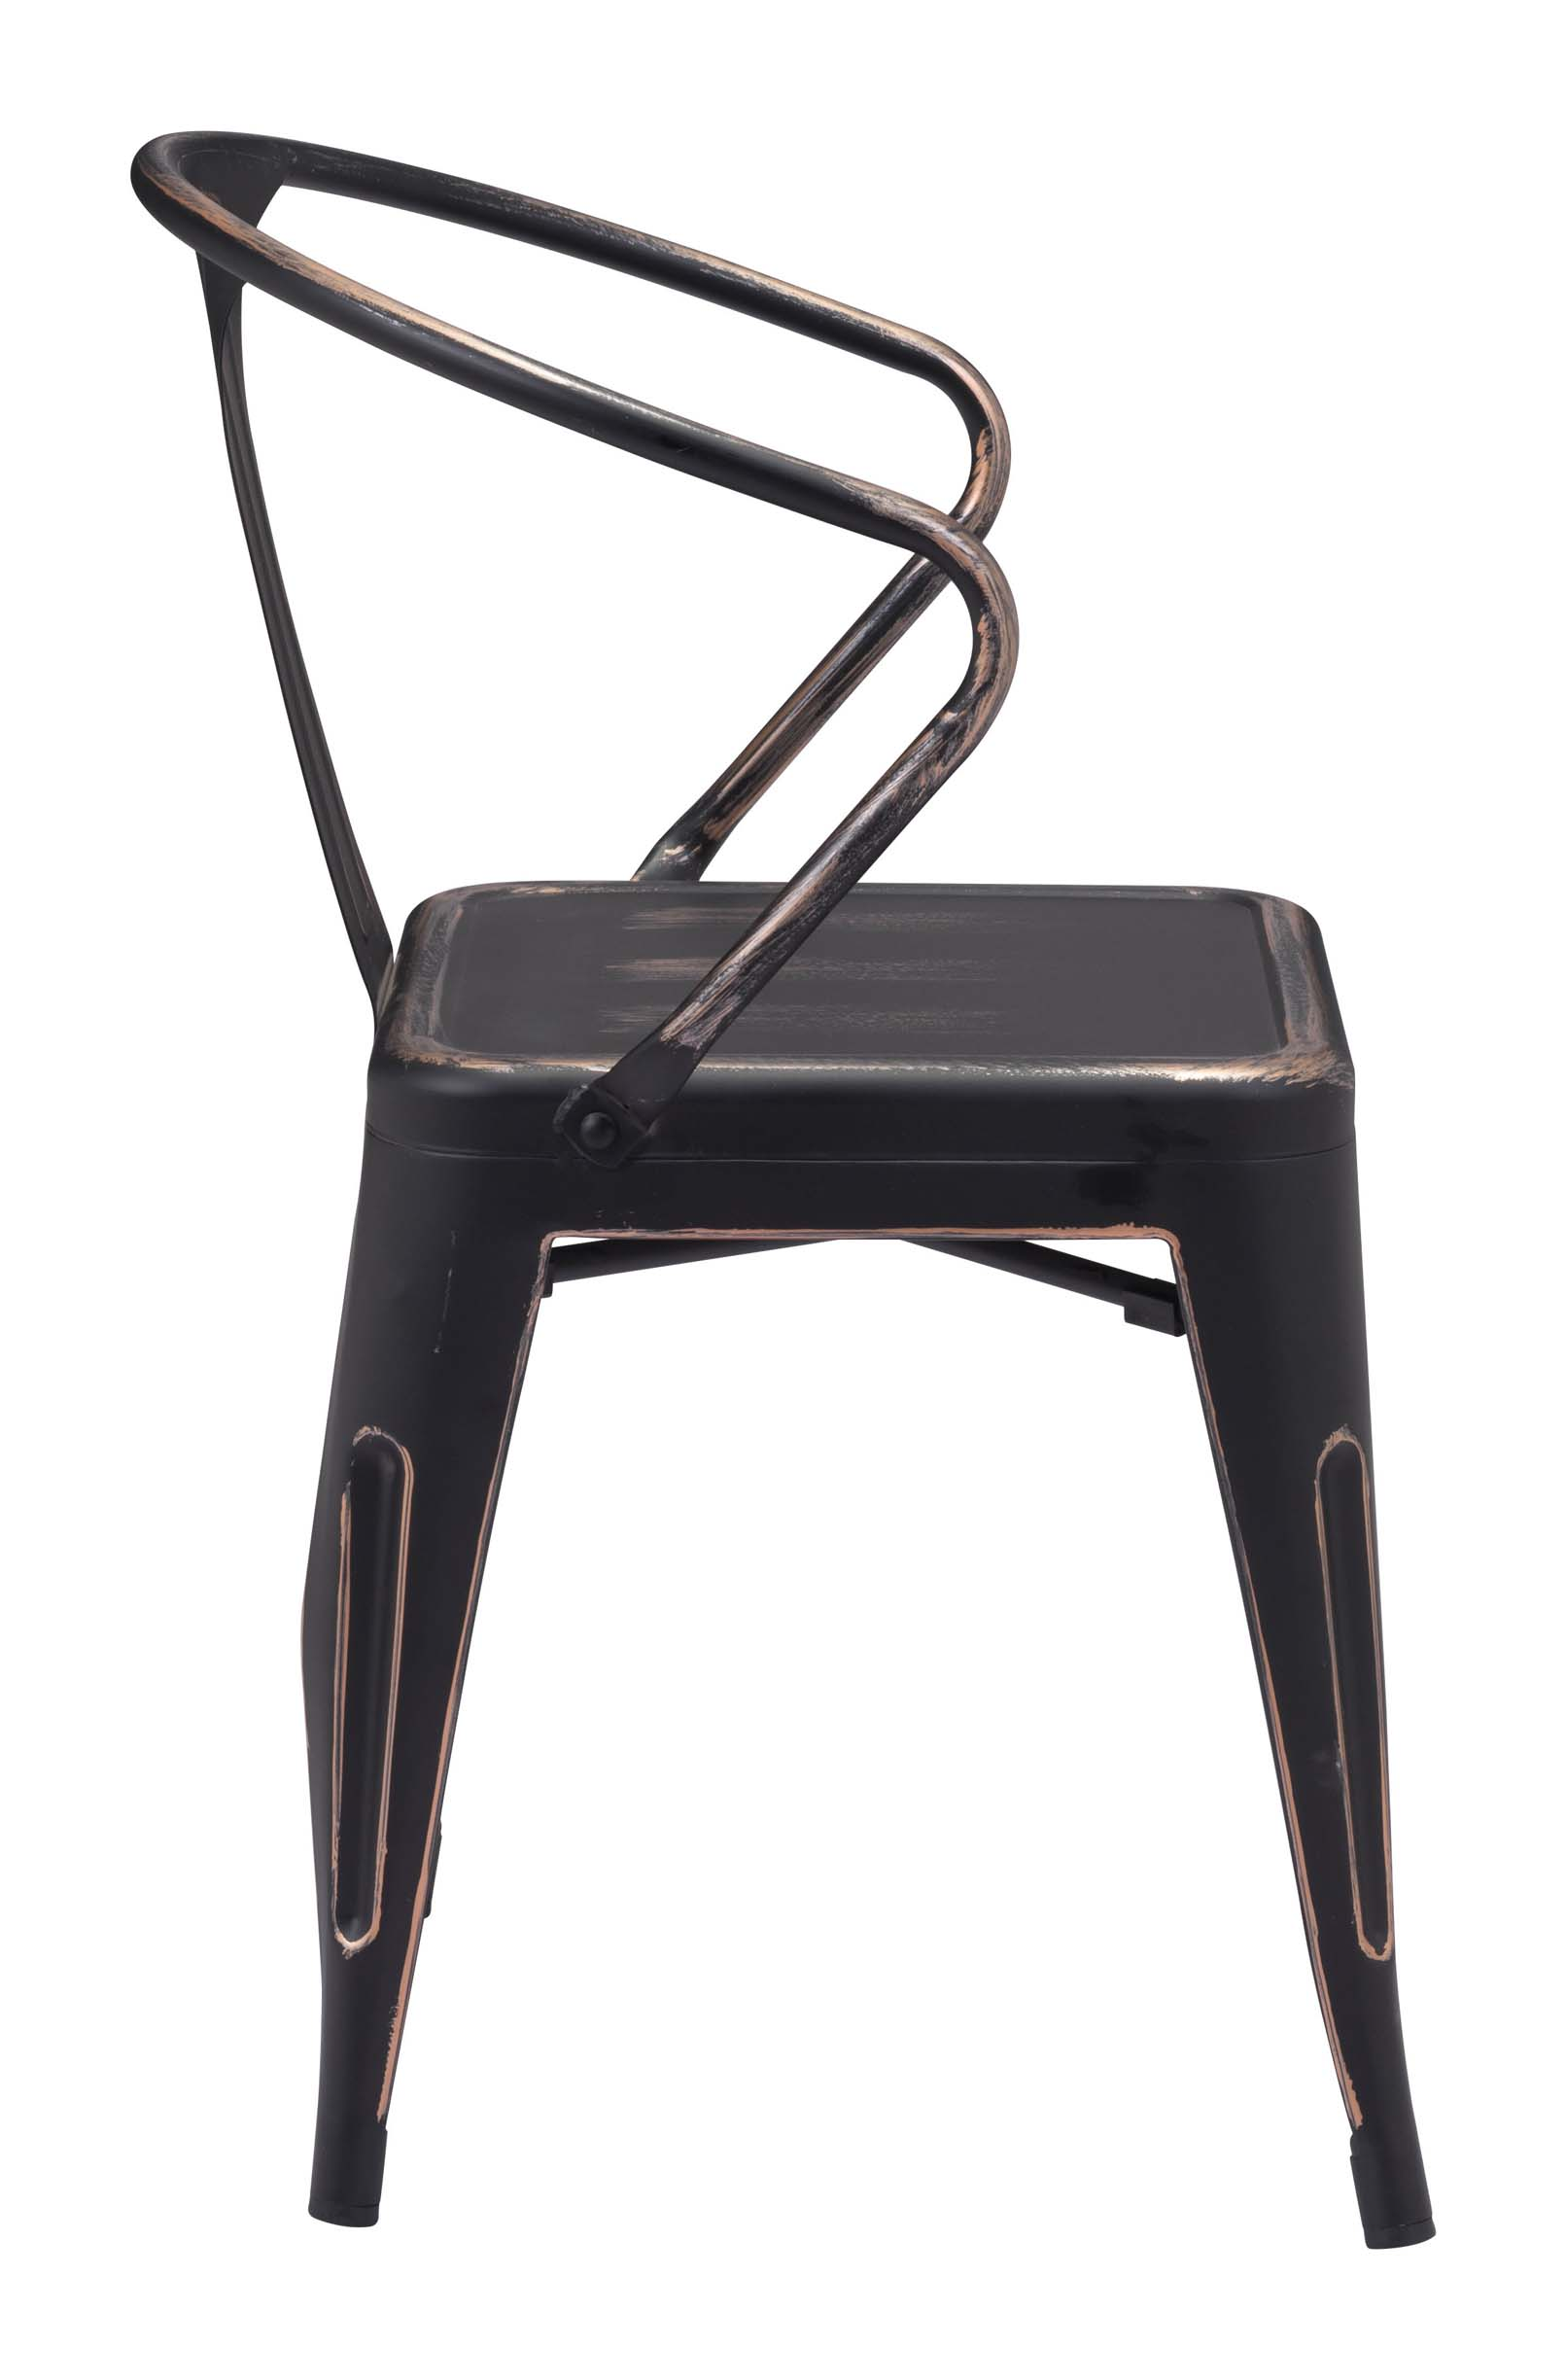 zuo-helix-dining-chair-antique-black-gold.jpg